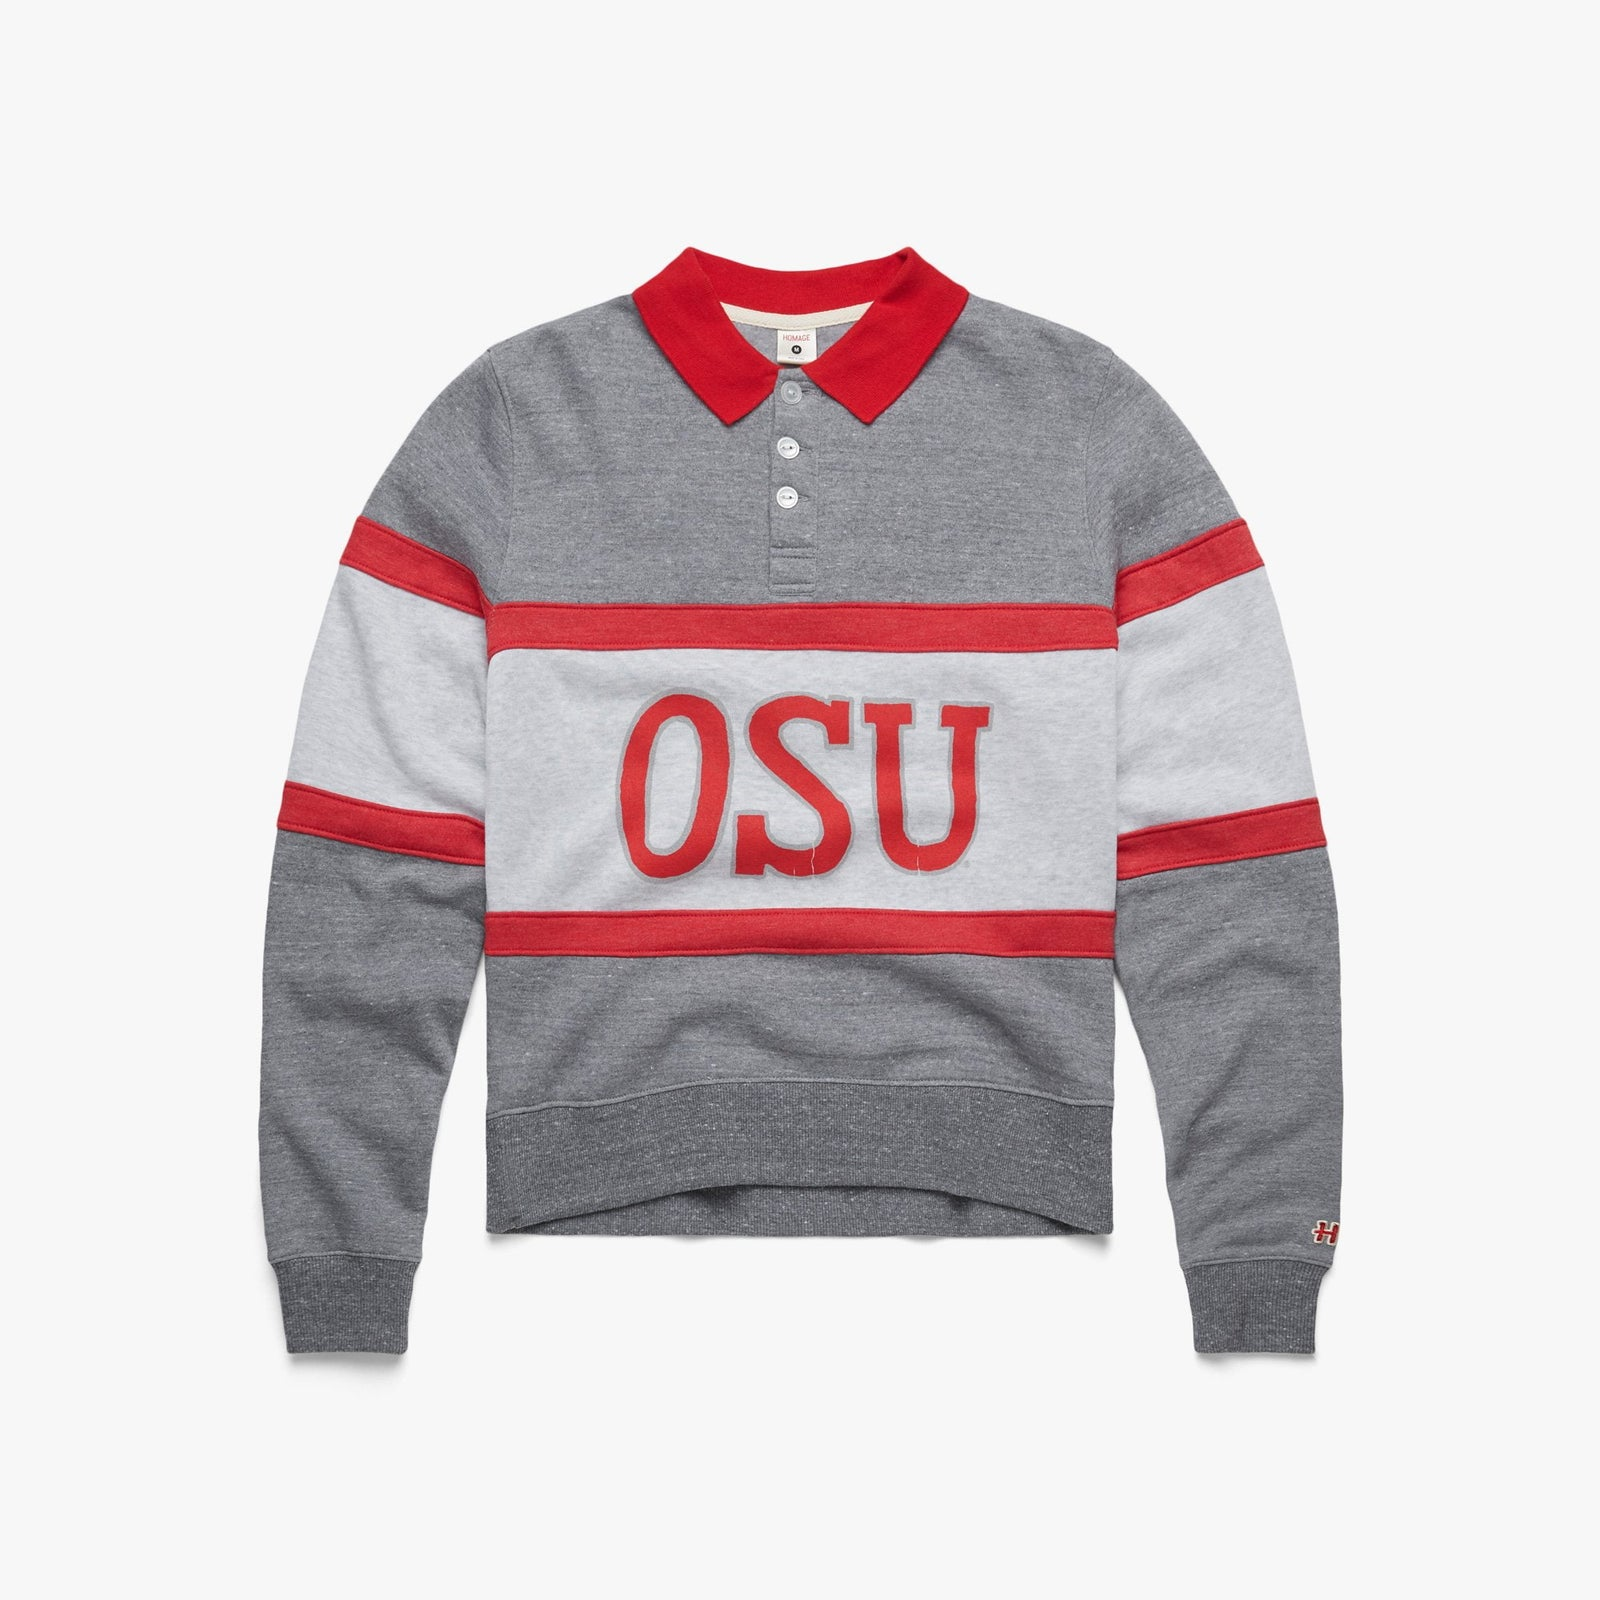 Women's OSU Retro Rugby Sweatshirt